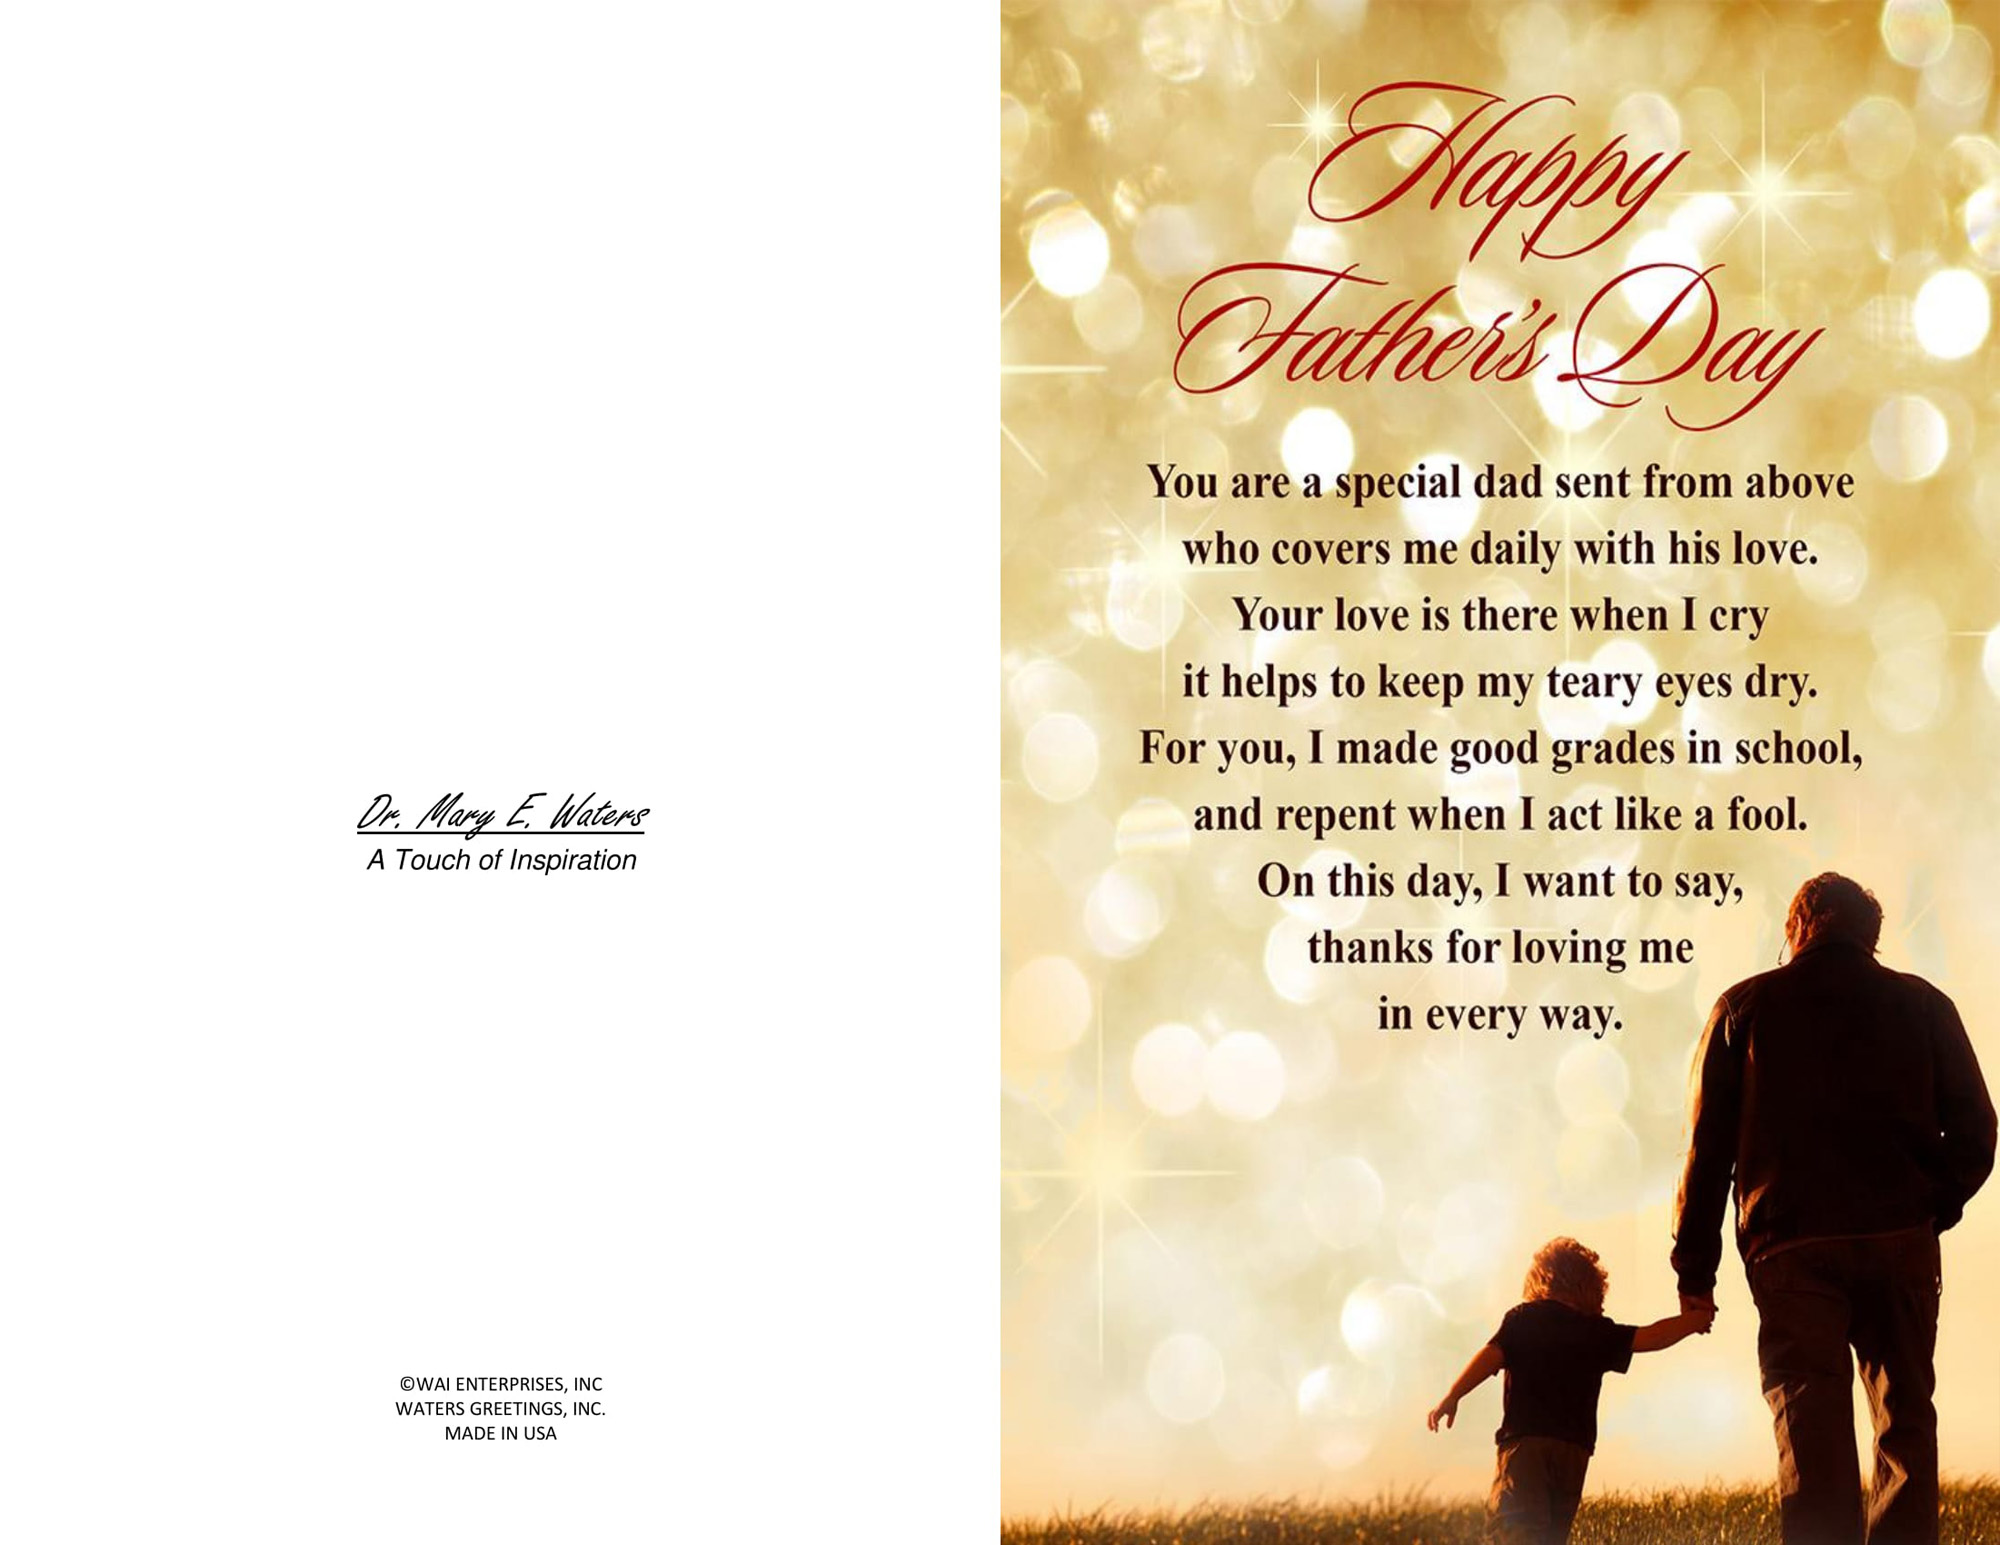 image regarding Happy Fathers Day Cards Printable named 2 Printable Joyful Fathers Working day Playing cards Blank in just, 5.5 x